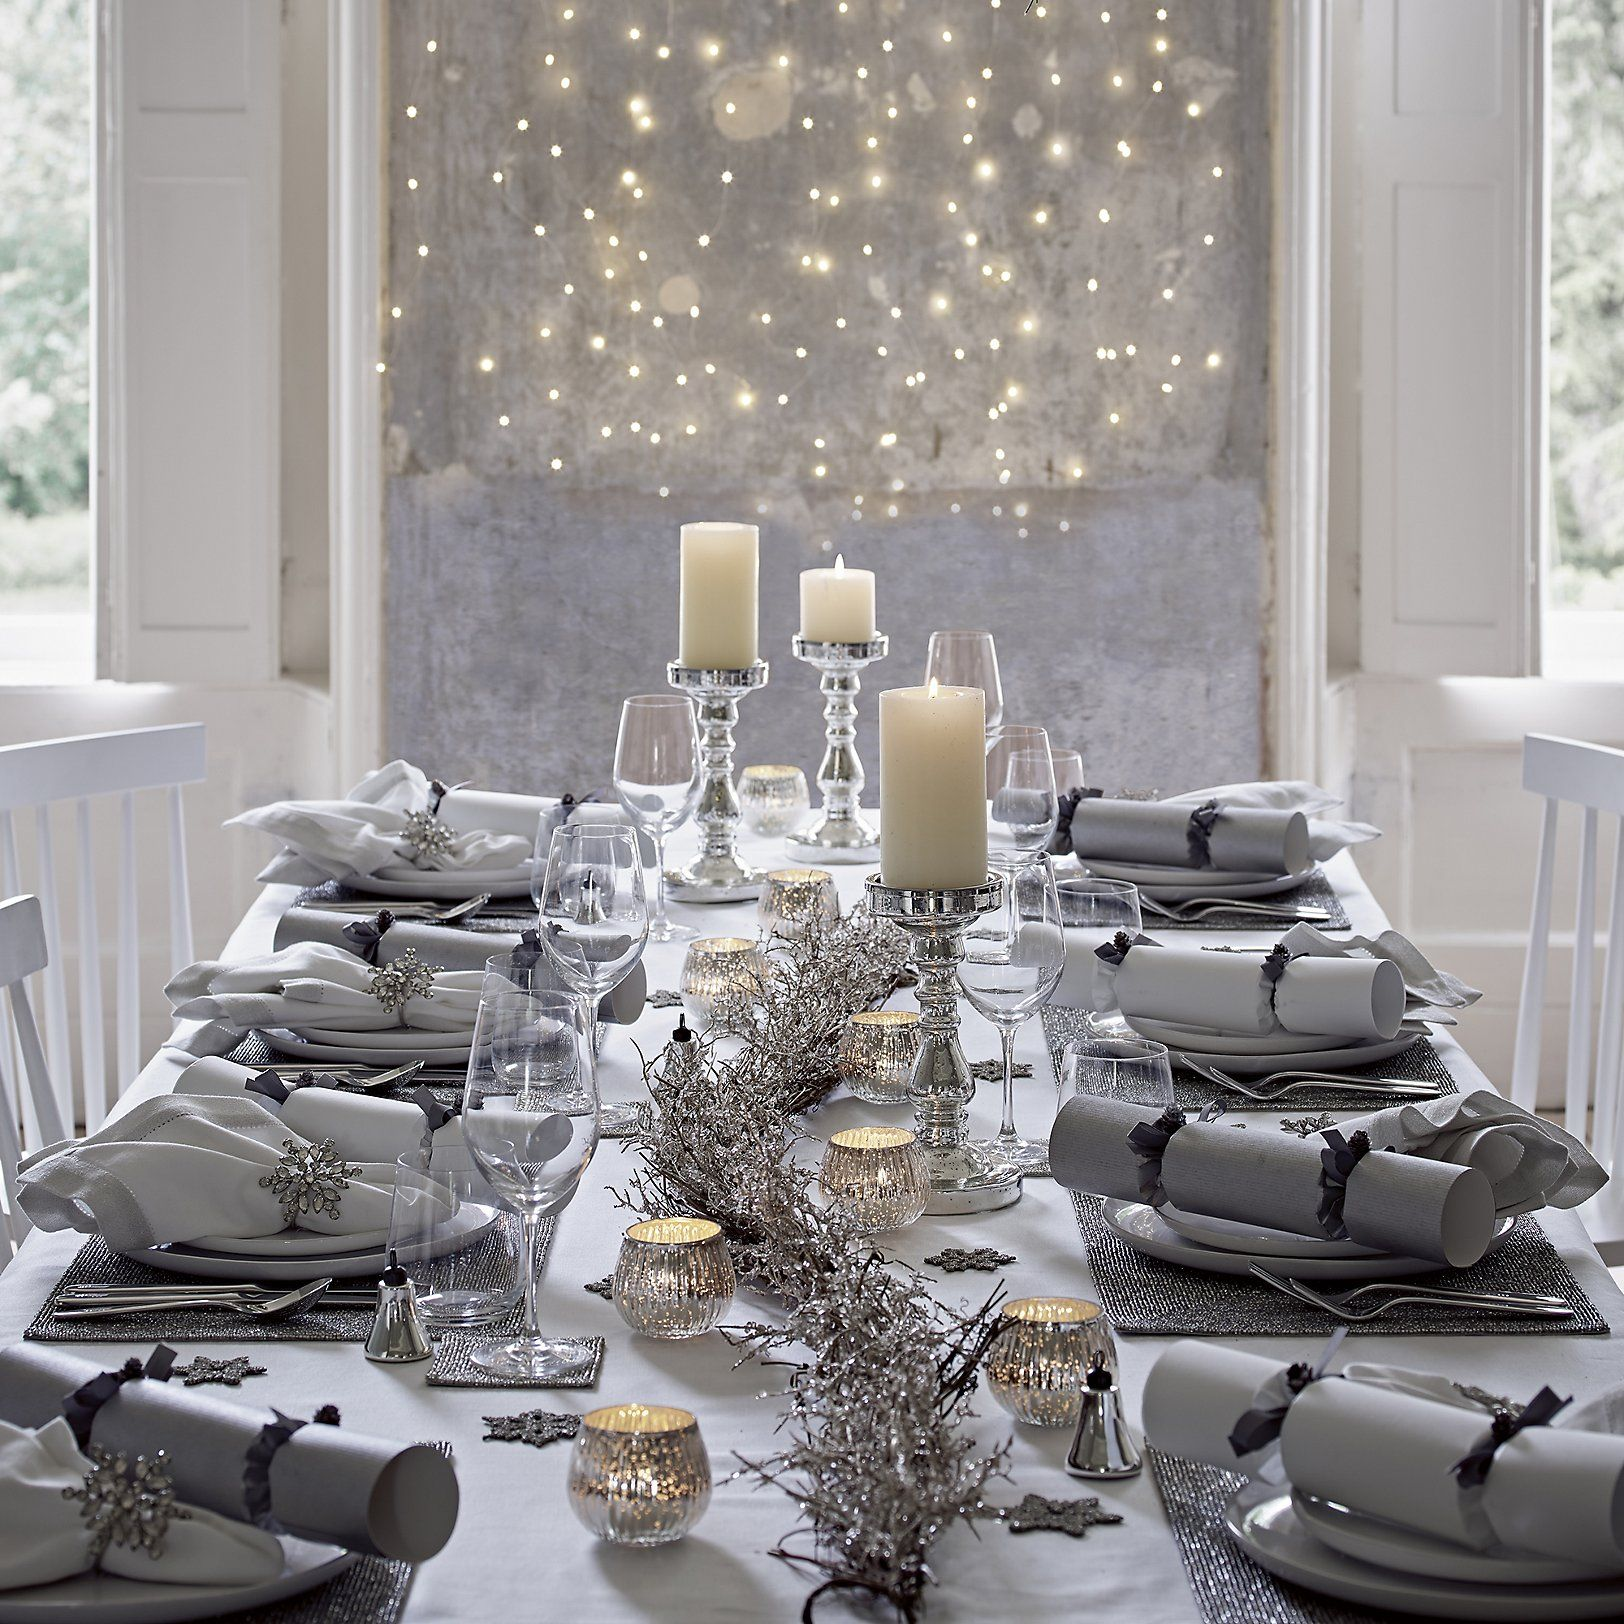 Beaded Garland Pre Lit The White Company Uk Christmas Dining Table Christmas Table Settings Decor